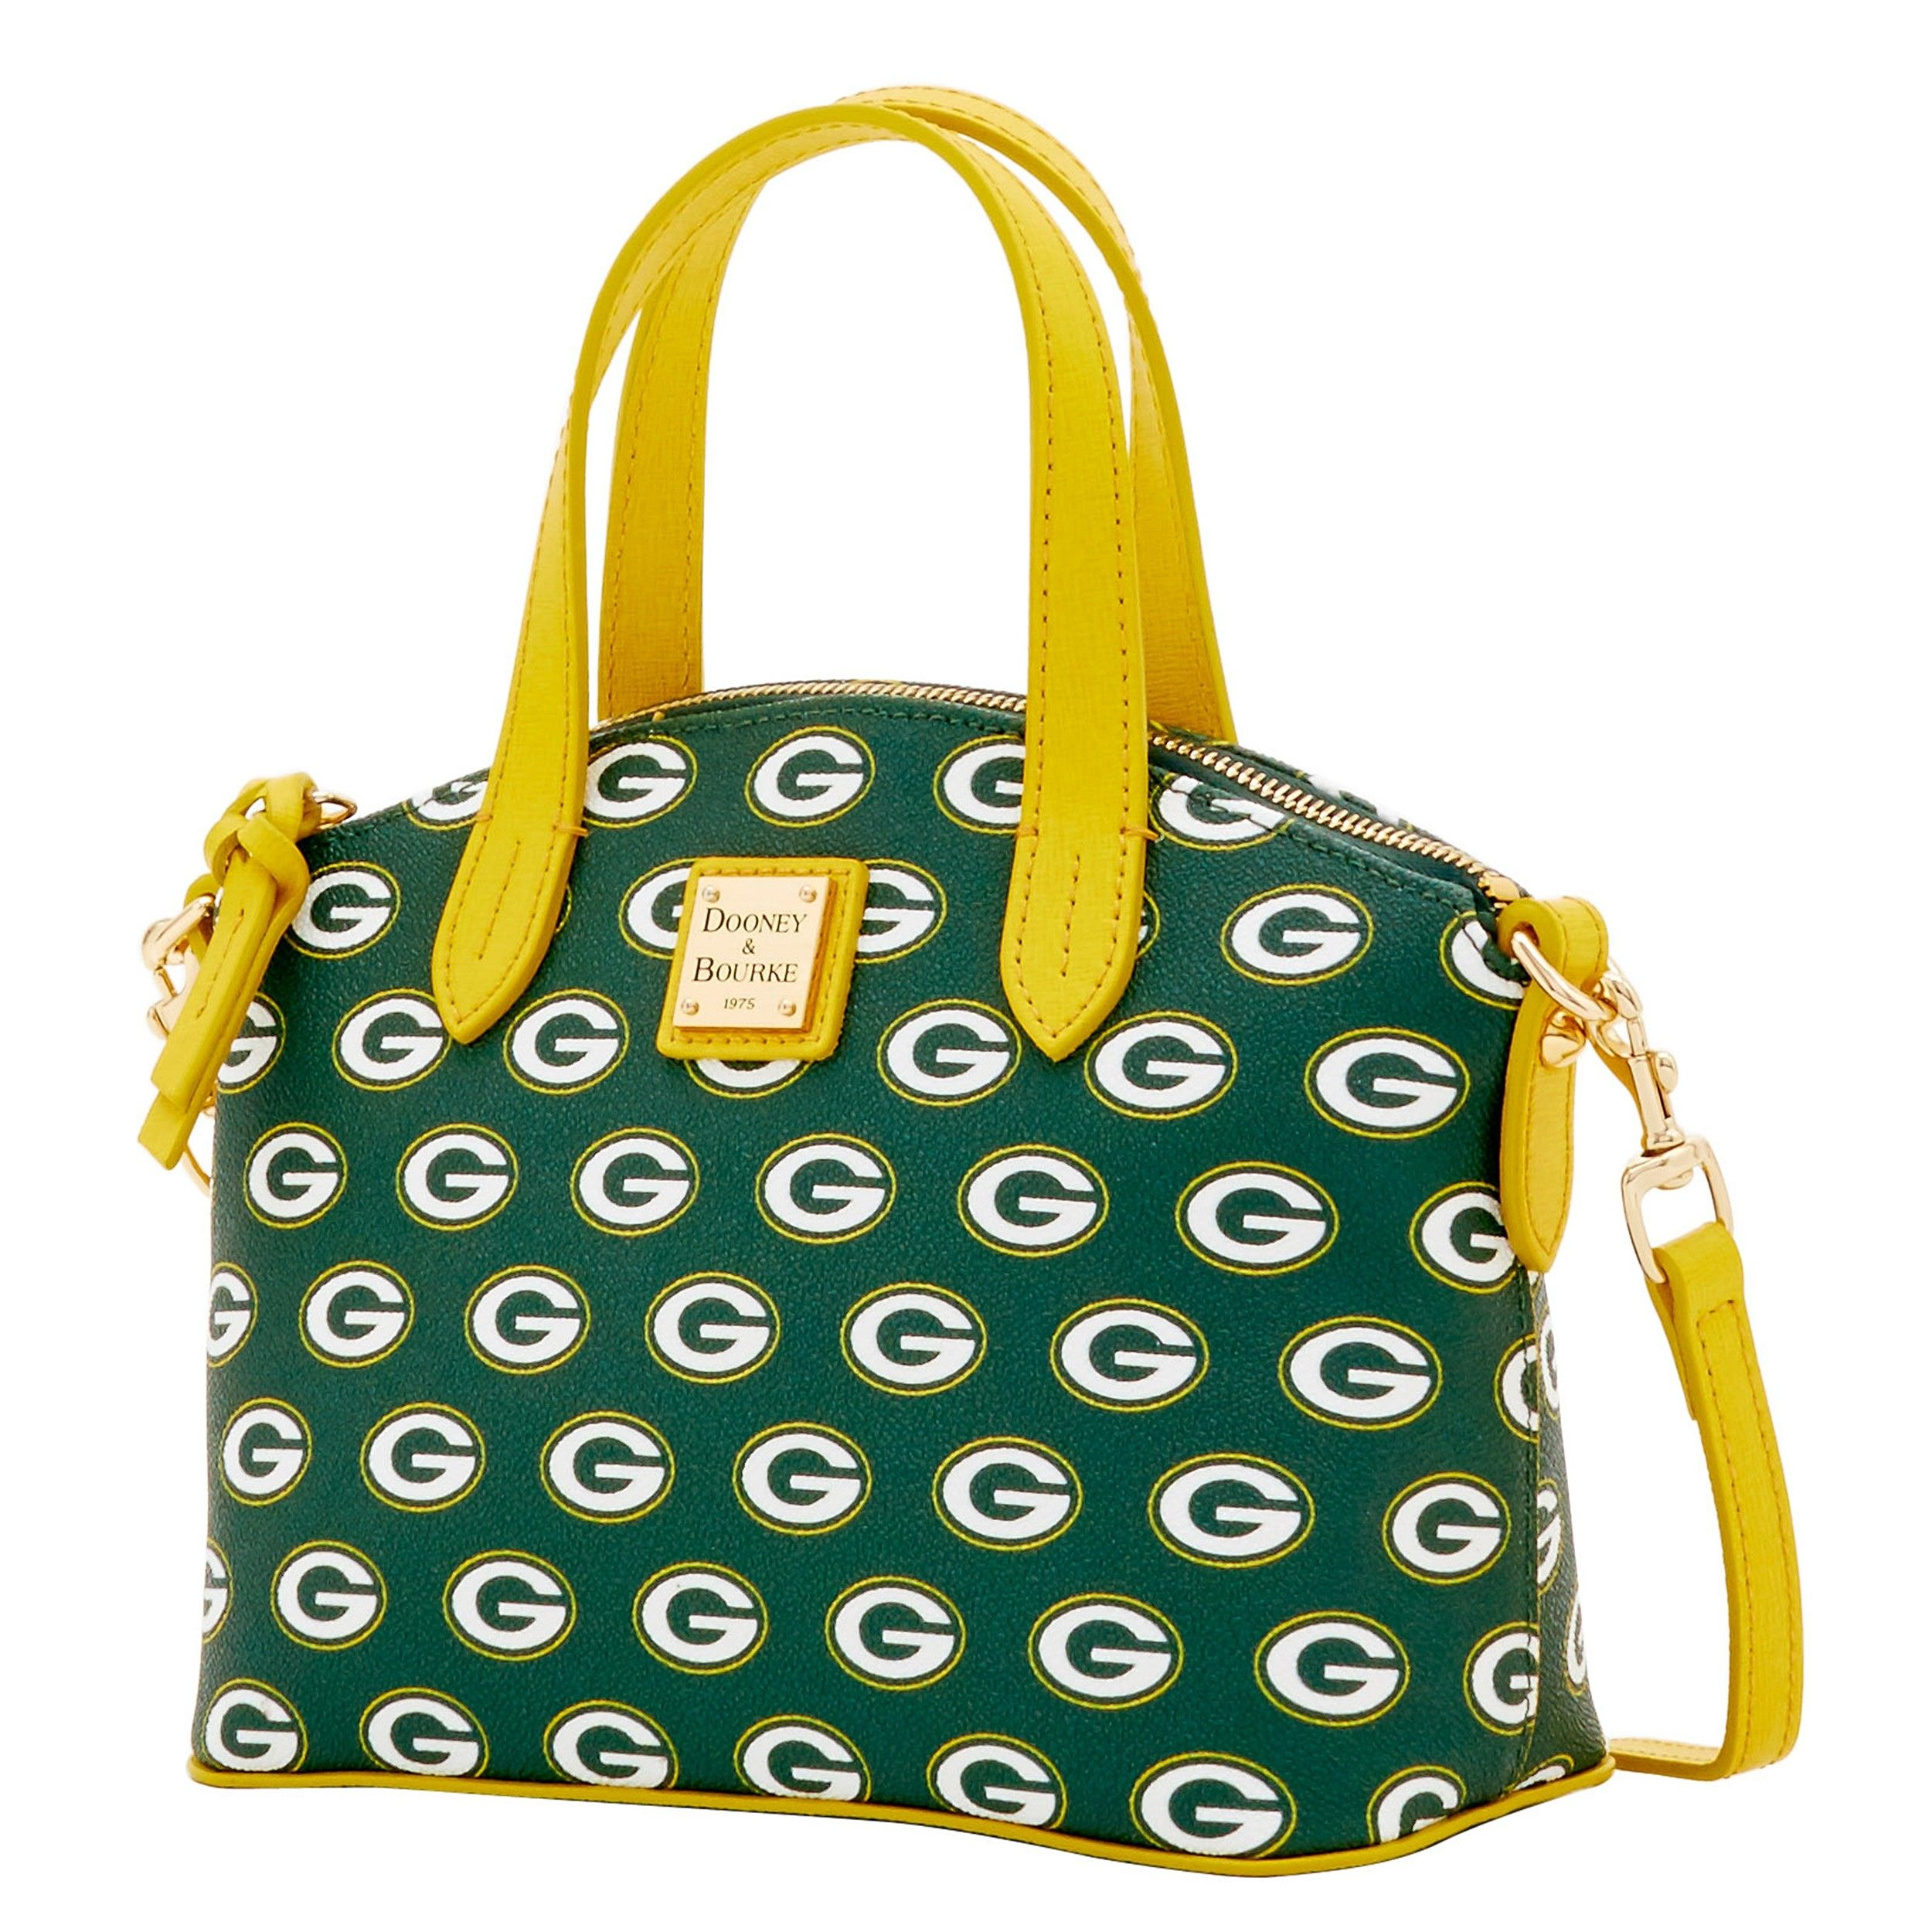 Dooney & Bourke NFL Signature Ruby Bag (Green/Yellow/Packers) Bags Z8Vymfln